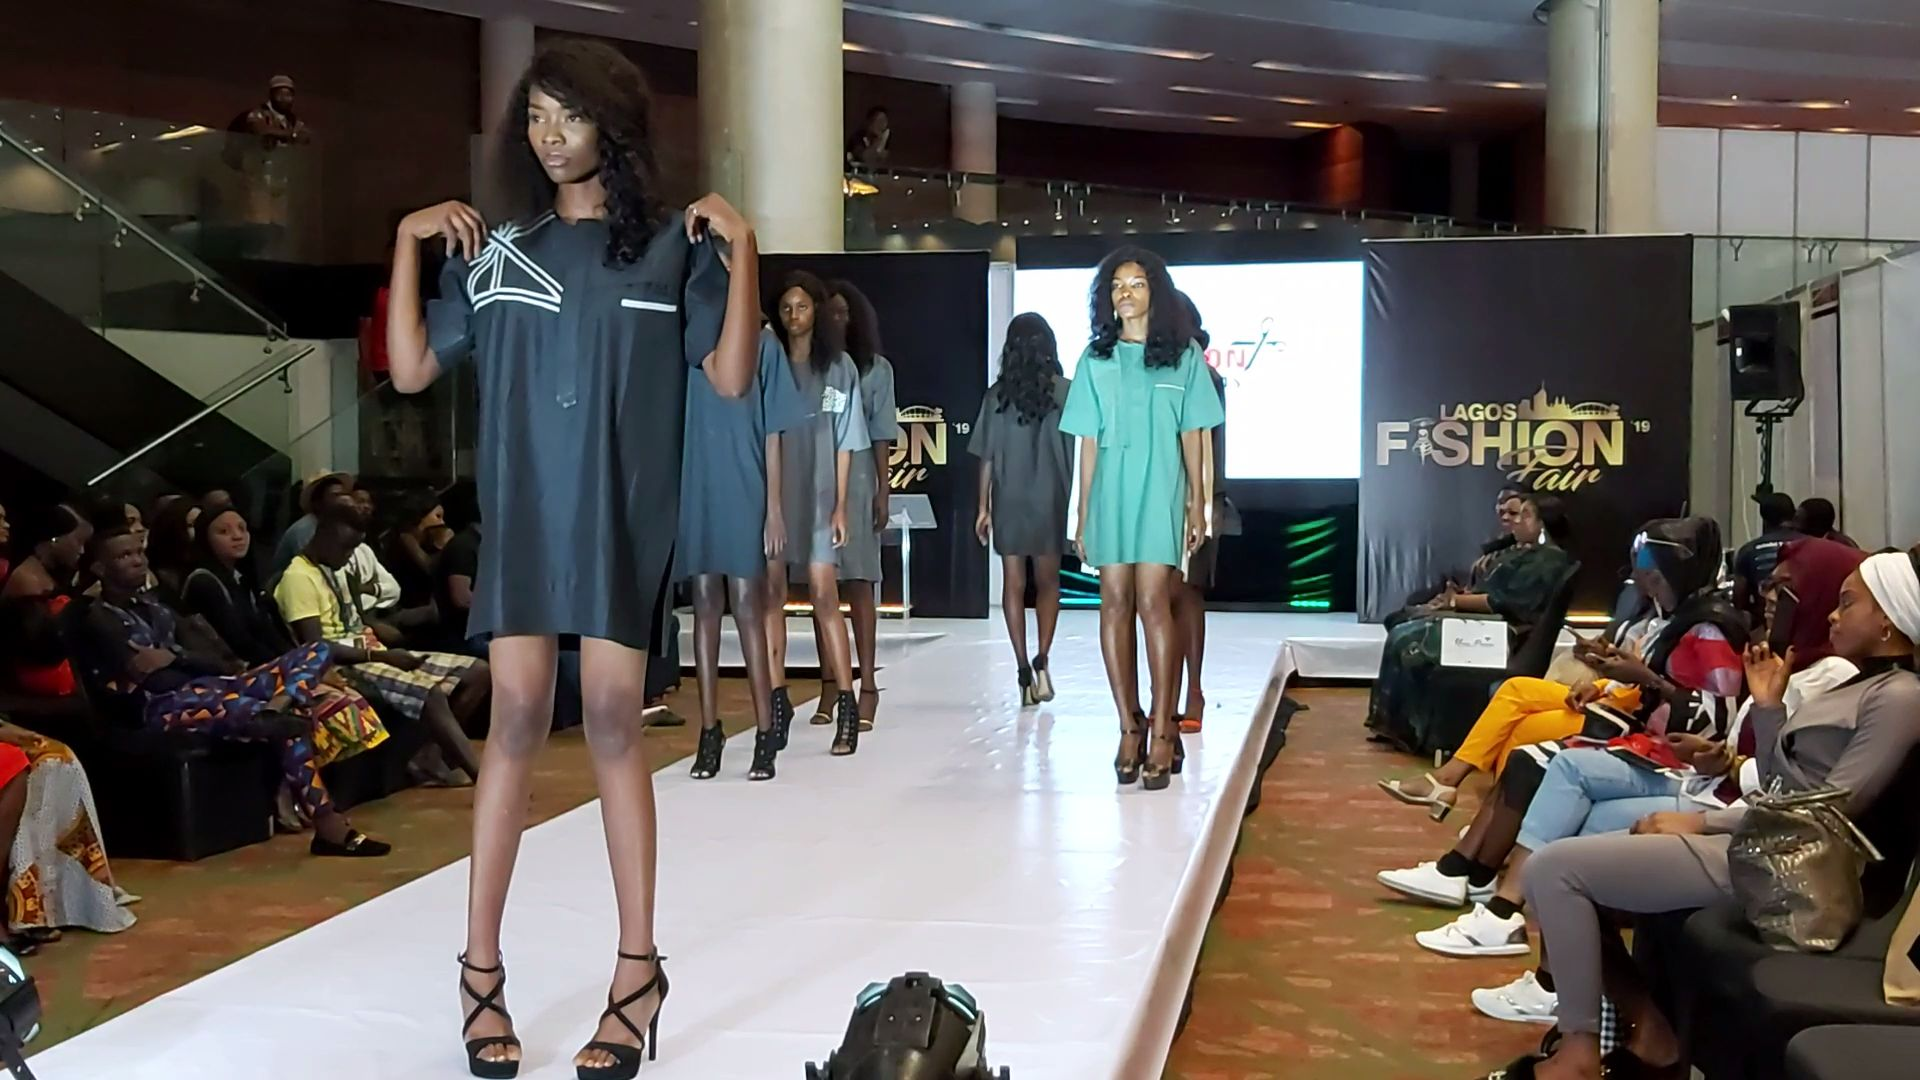 Fashion fair: Lagos excites fashionistas with haute coutures